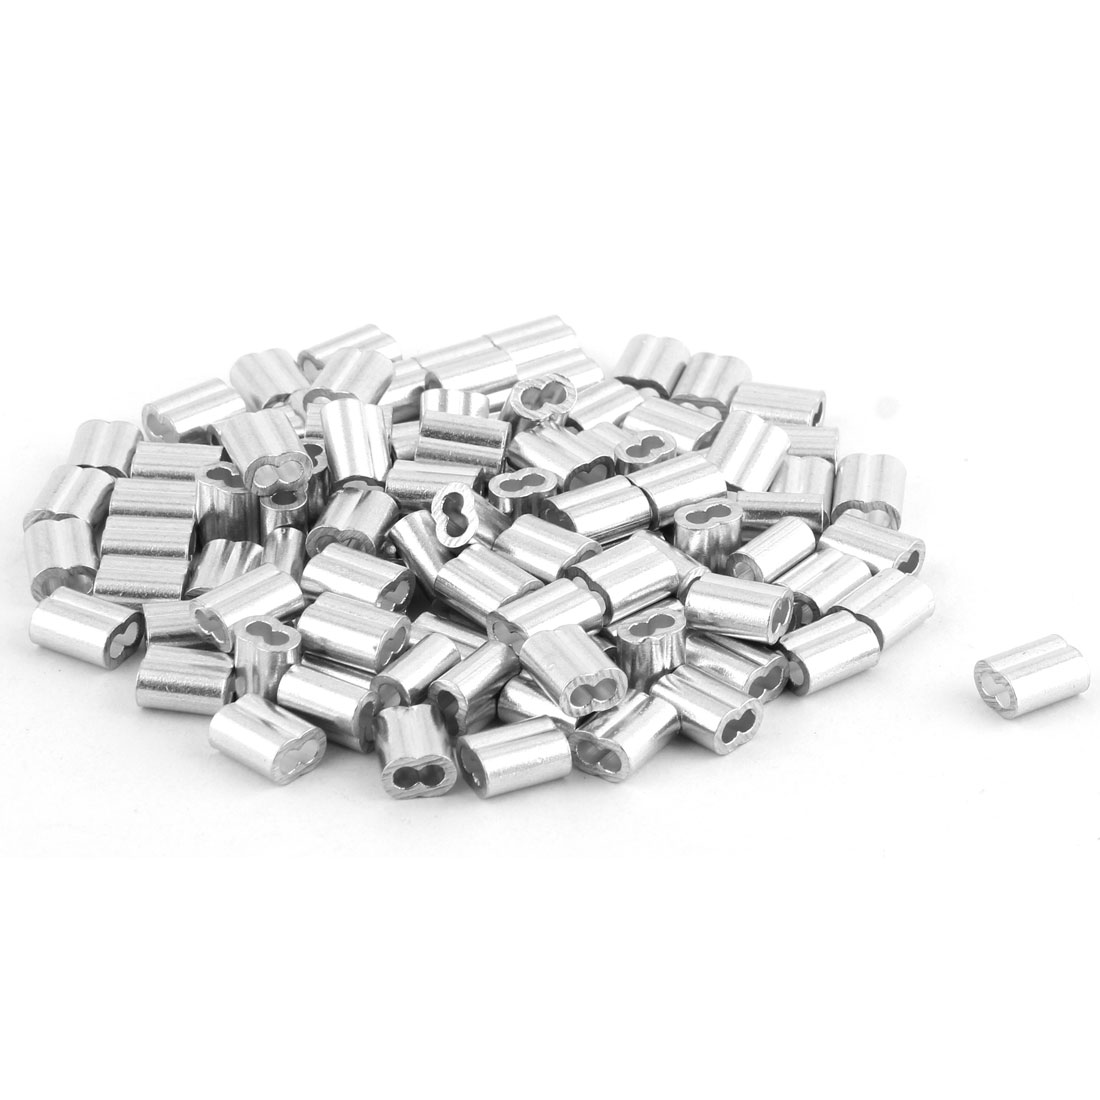 UXCELL Aluminum Ferrules Sleeves Fittings Clamps 9.5 X 5Mm